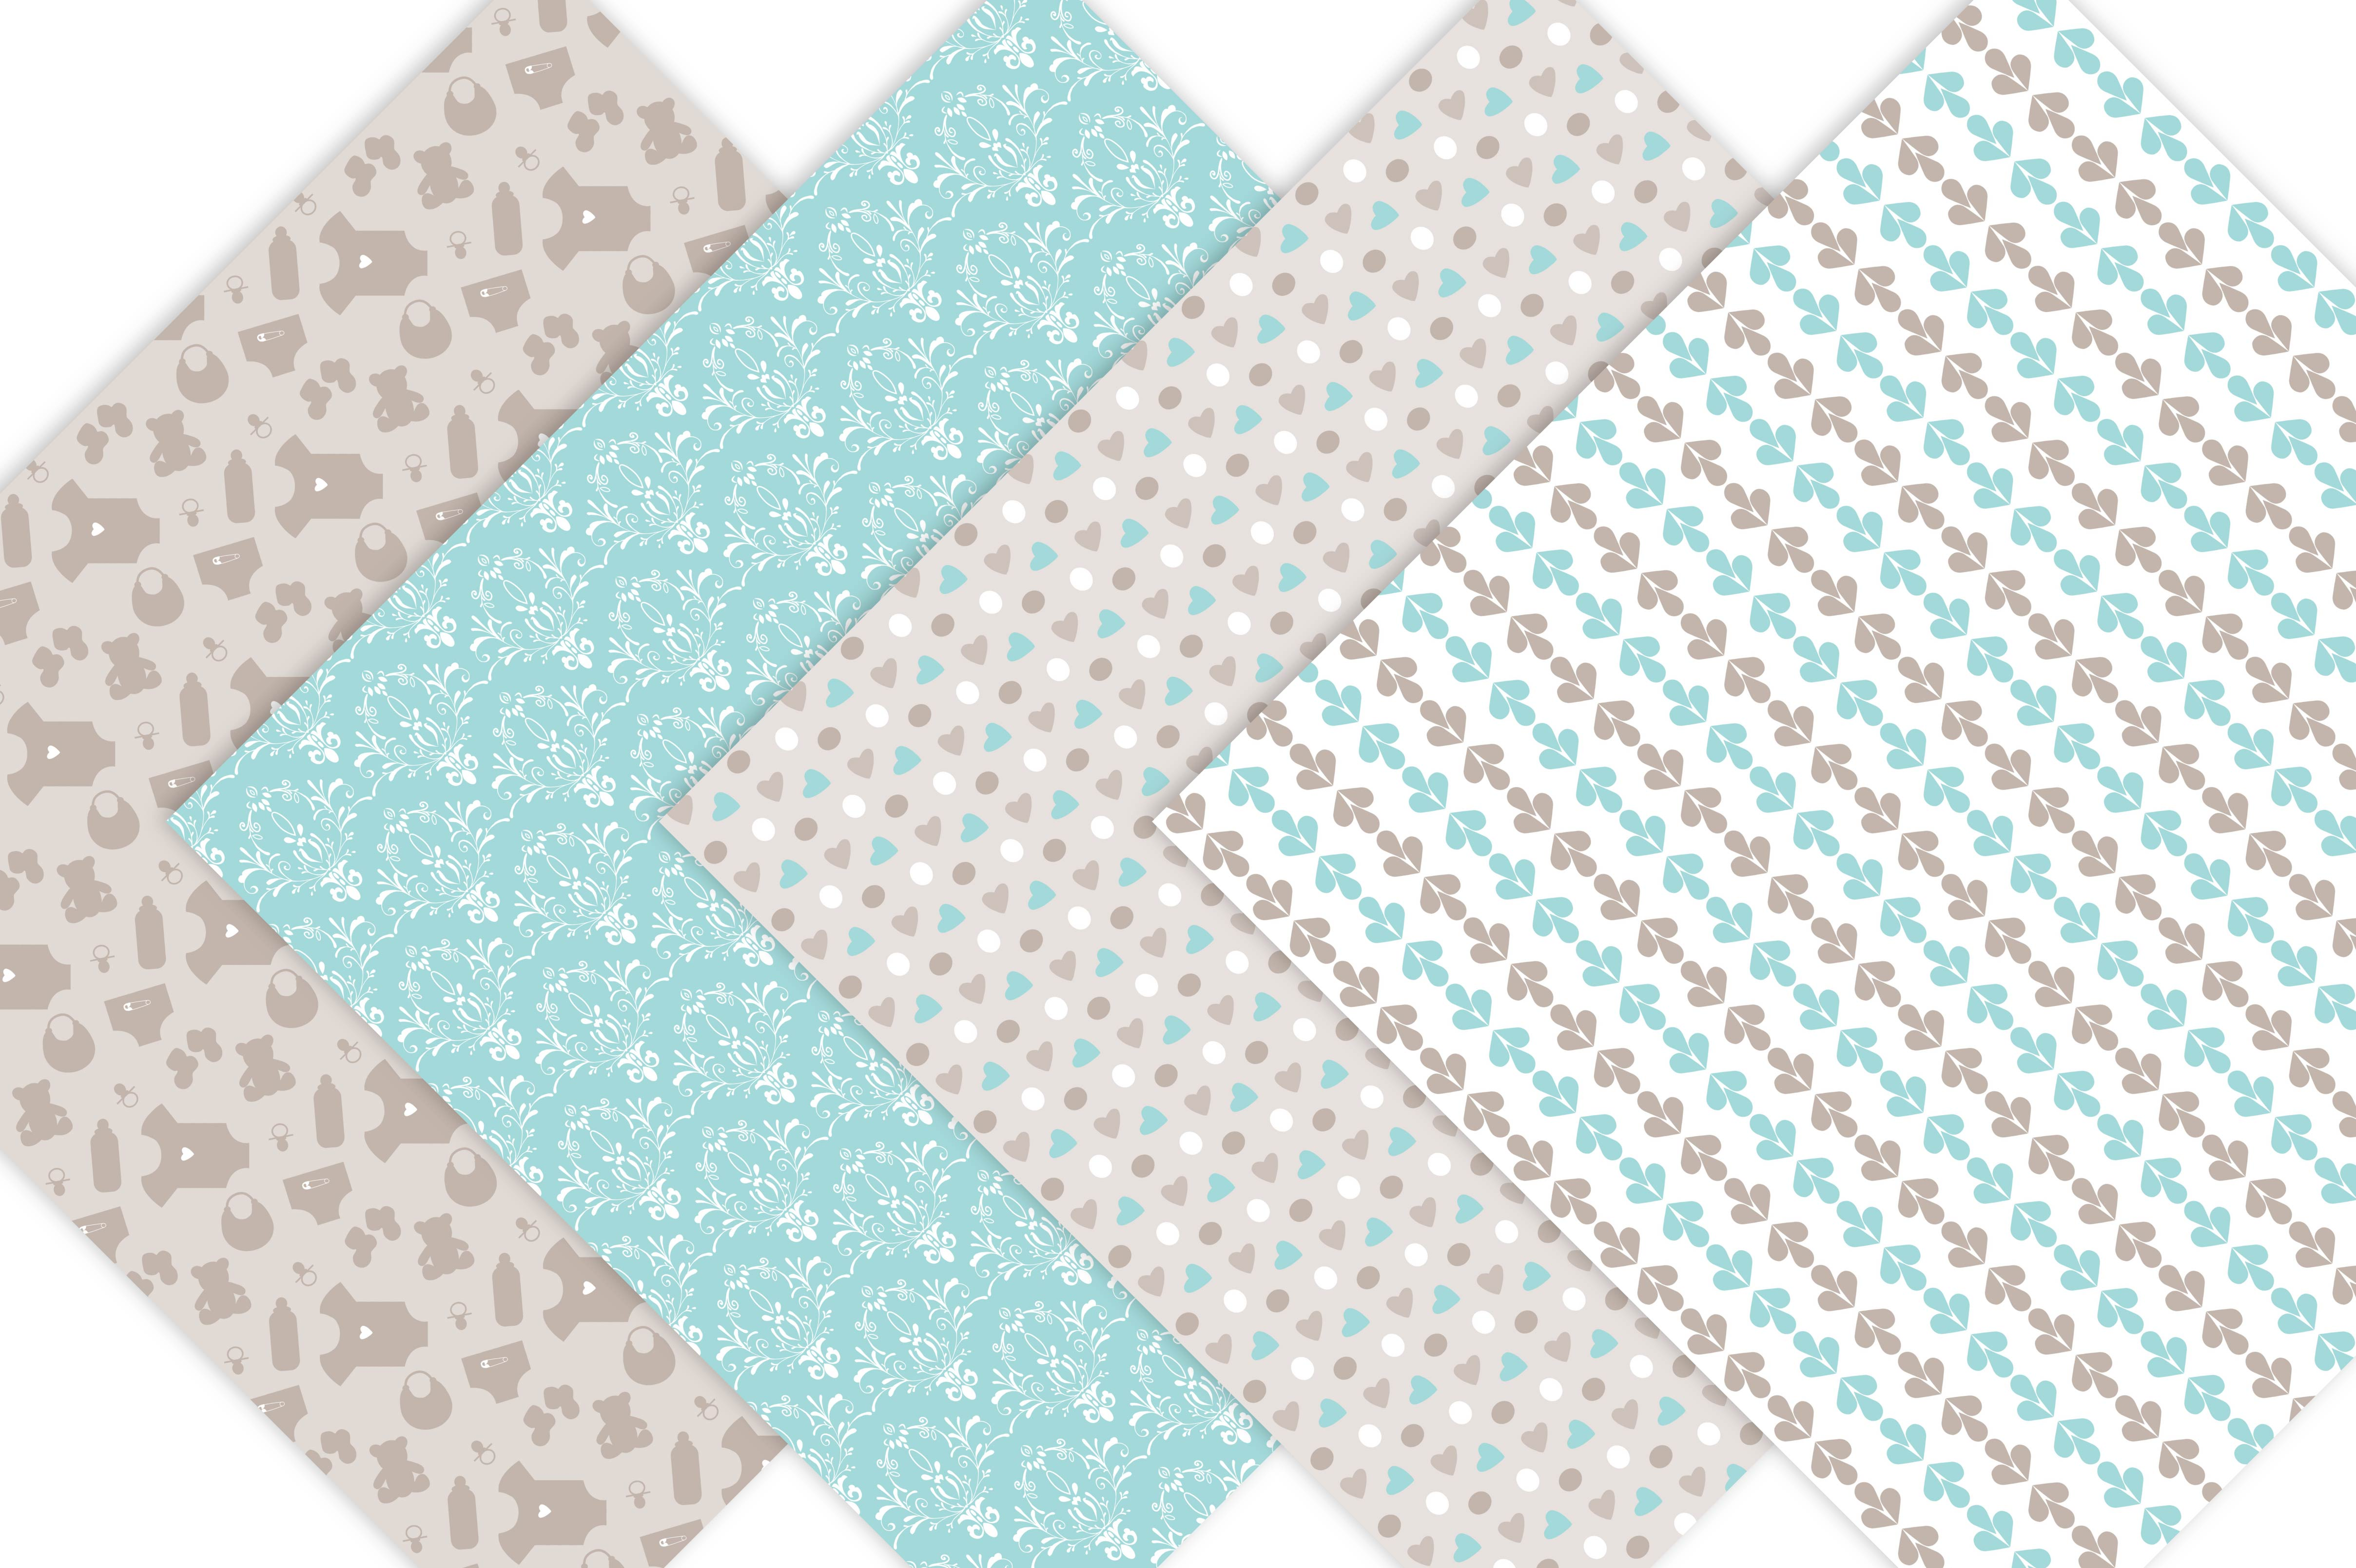 Baby Boy Digital Paper Patterns example image 2